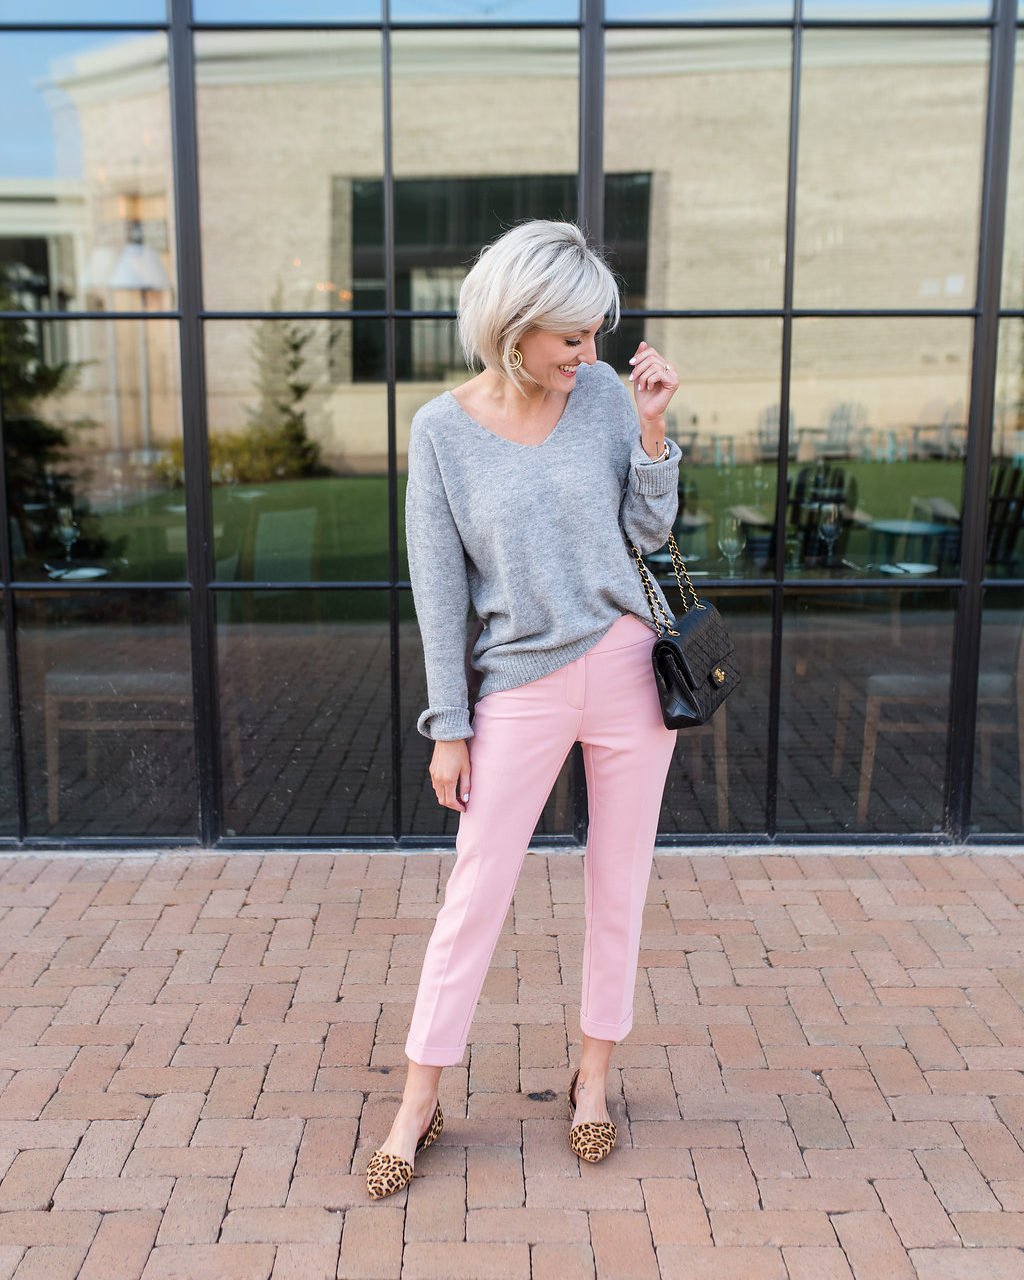 50% OFF Pants From LOFT